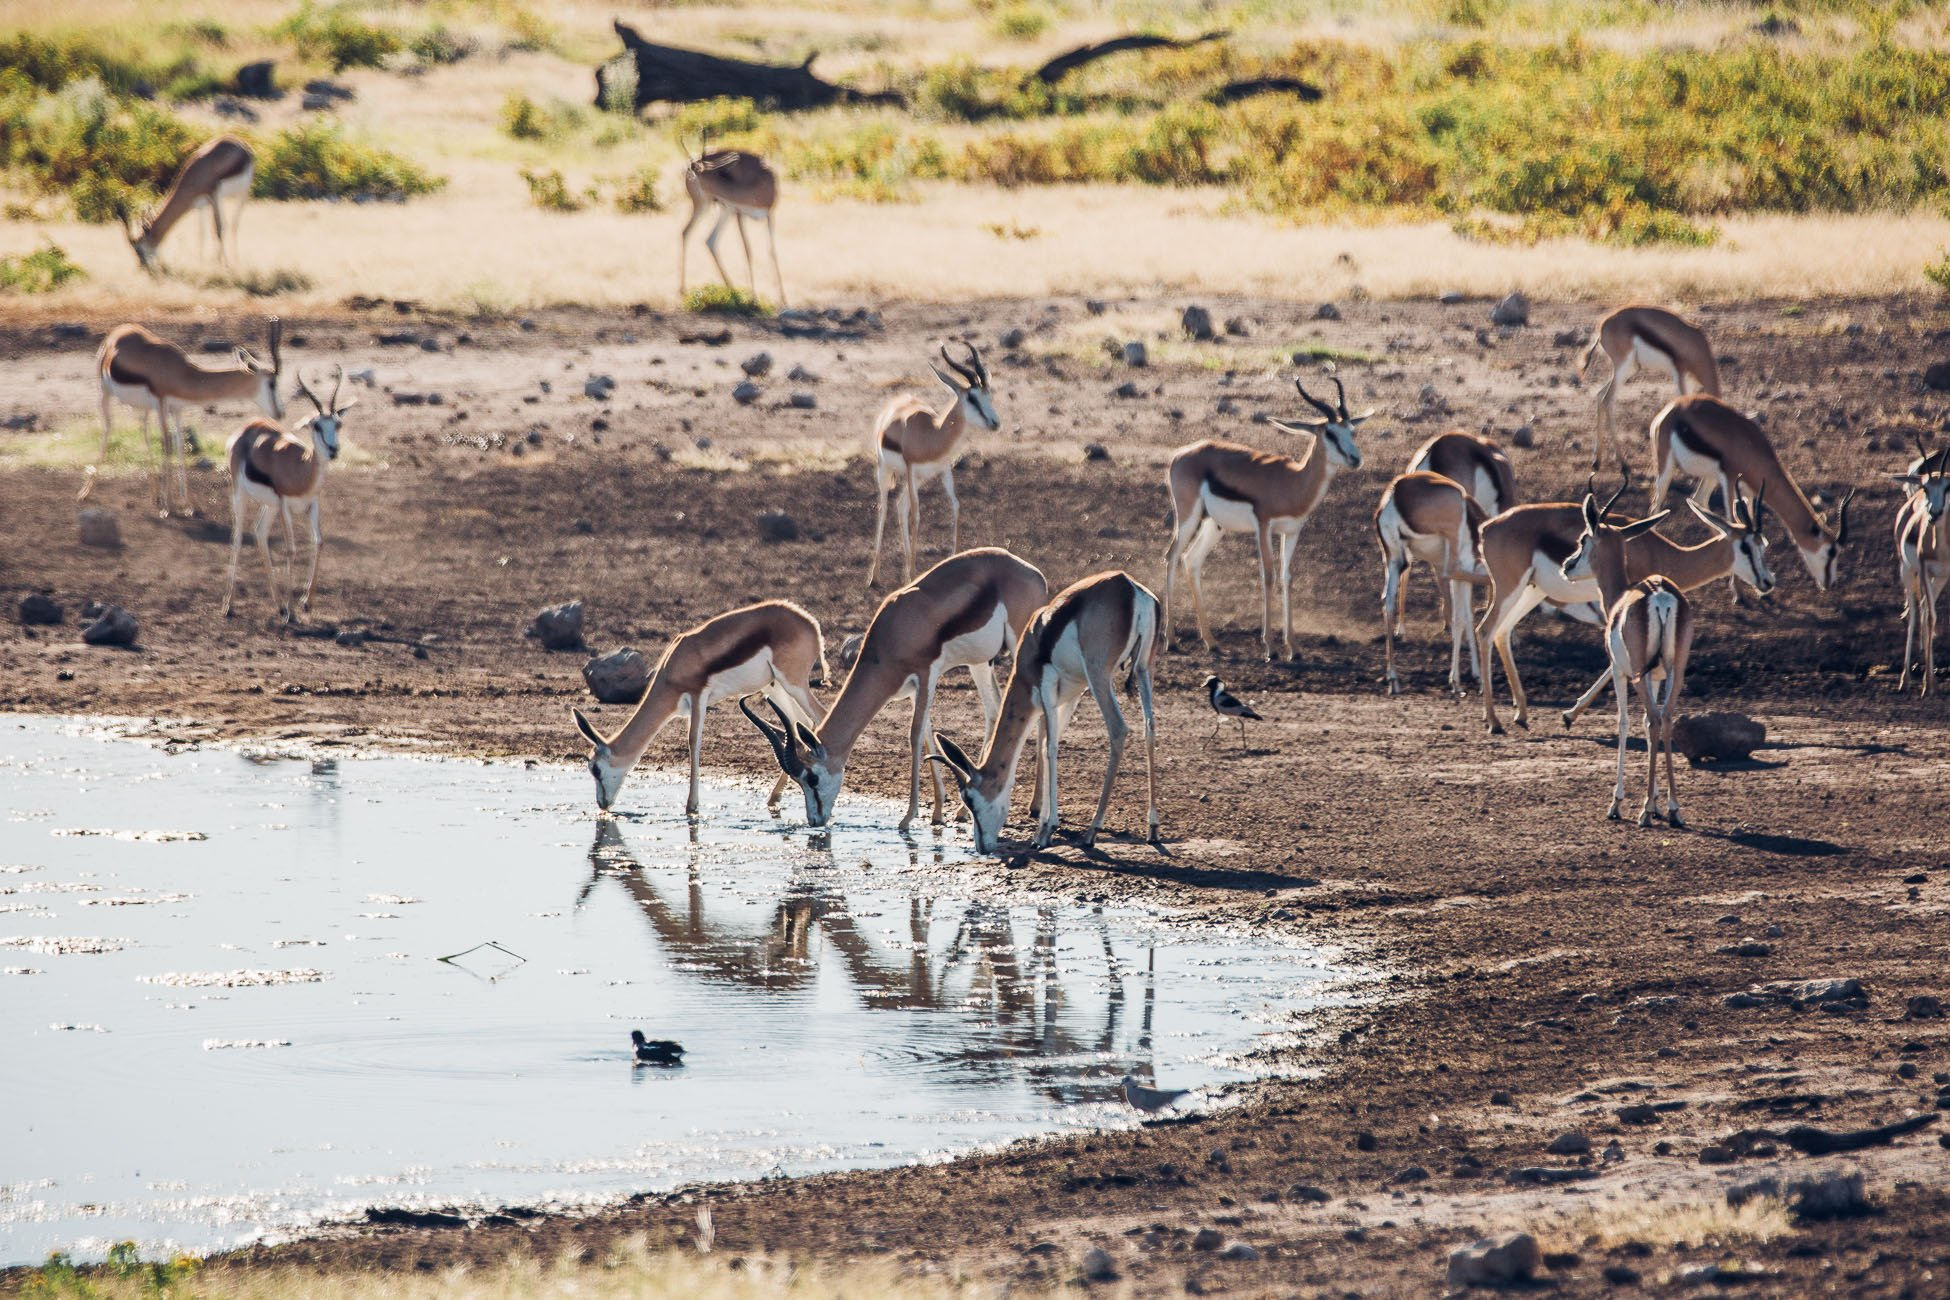 Antelopes at a waterhole at Etosha National Park